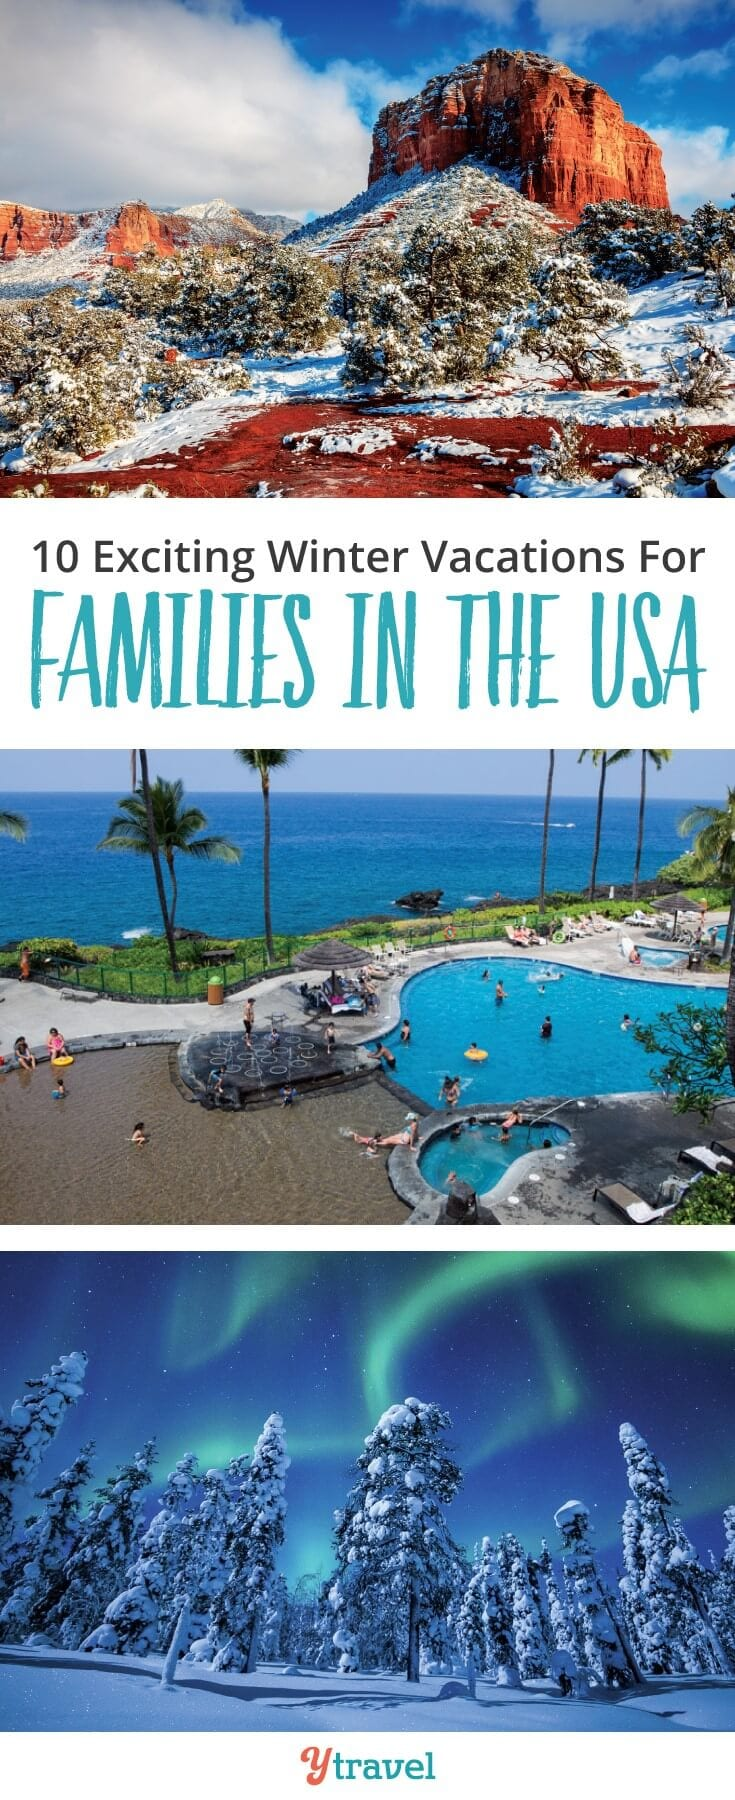 10 winter vacations for families in the USA. Great suggestions on places to visit with kids to embrace winter, or destinations to escape the cold!